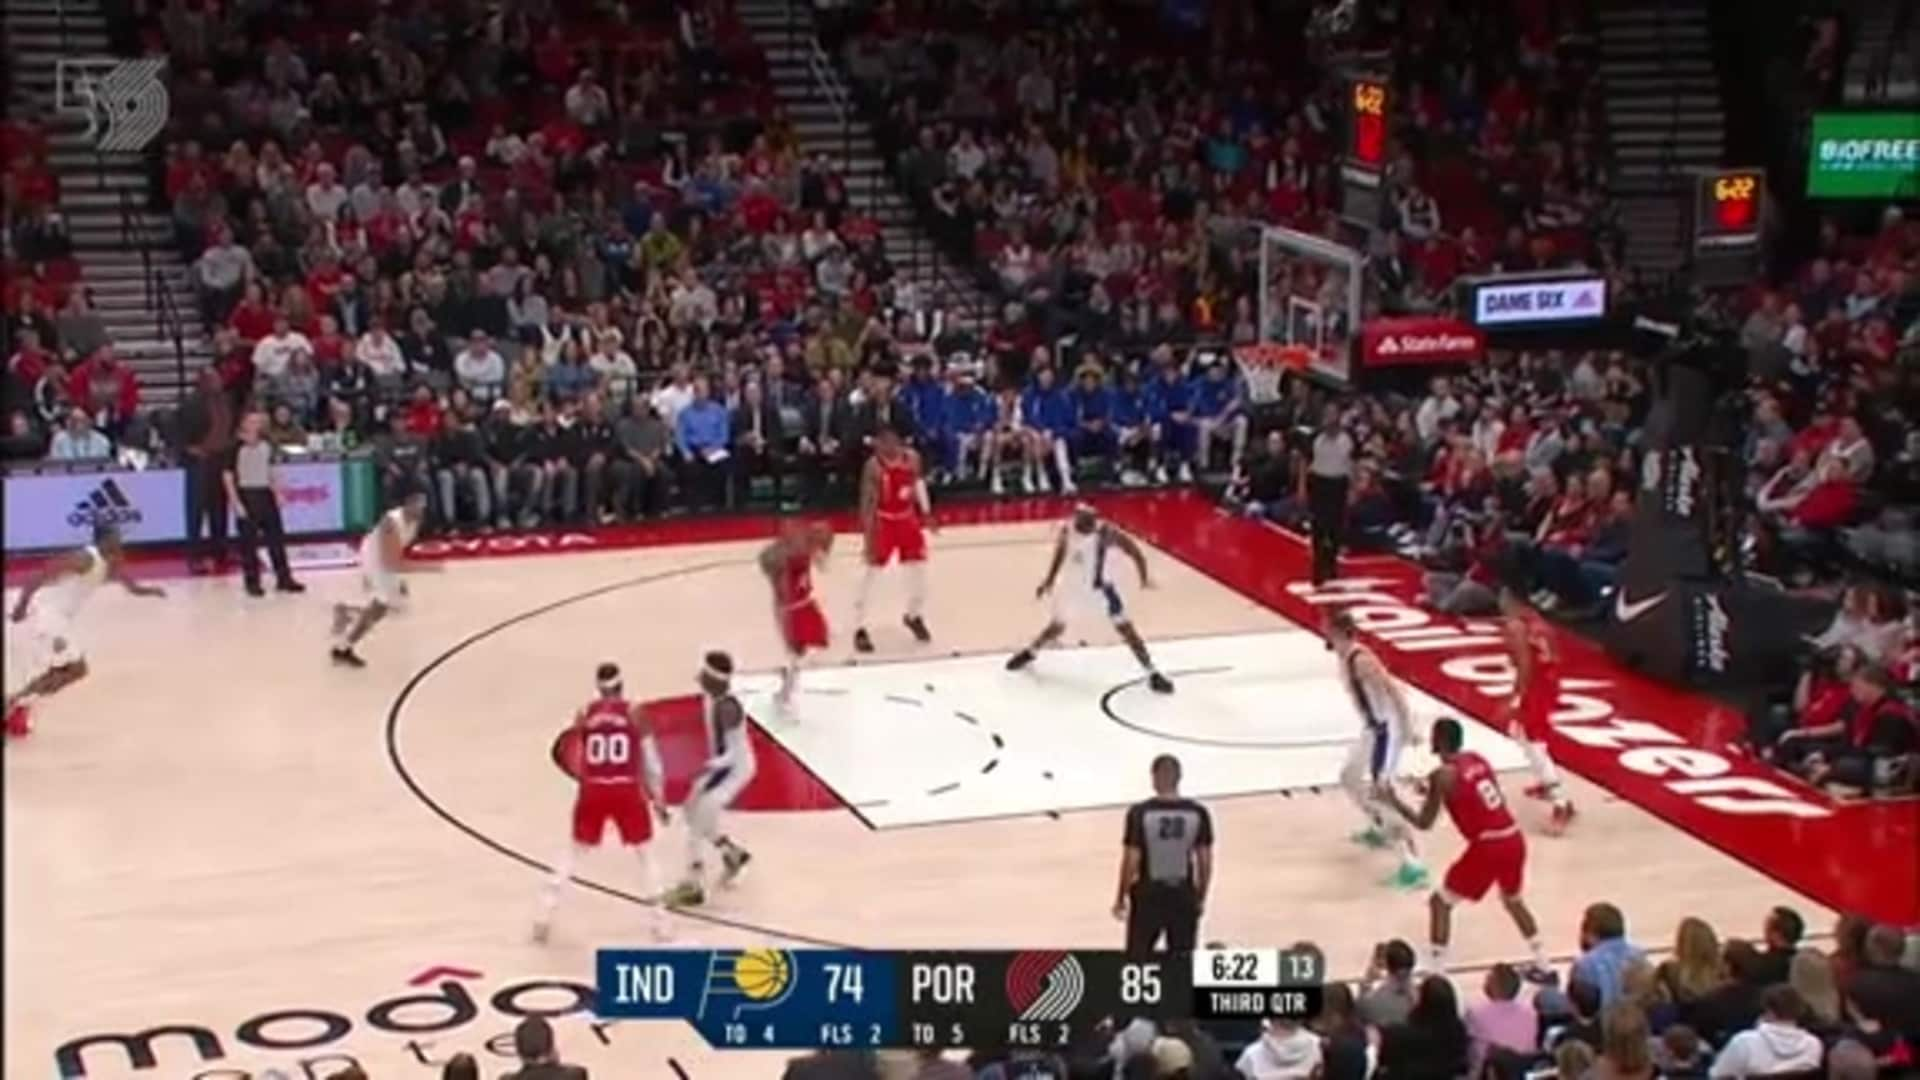 Dame goes behind the back to Hassan for the dunk